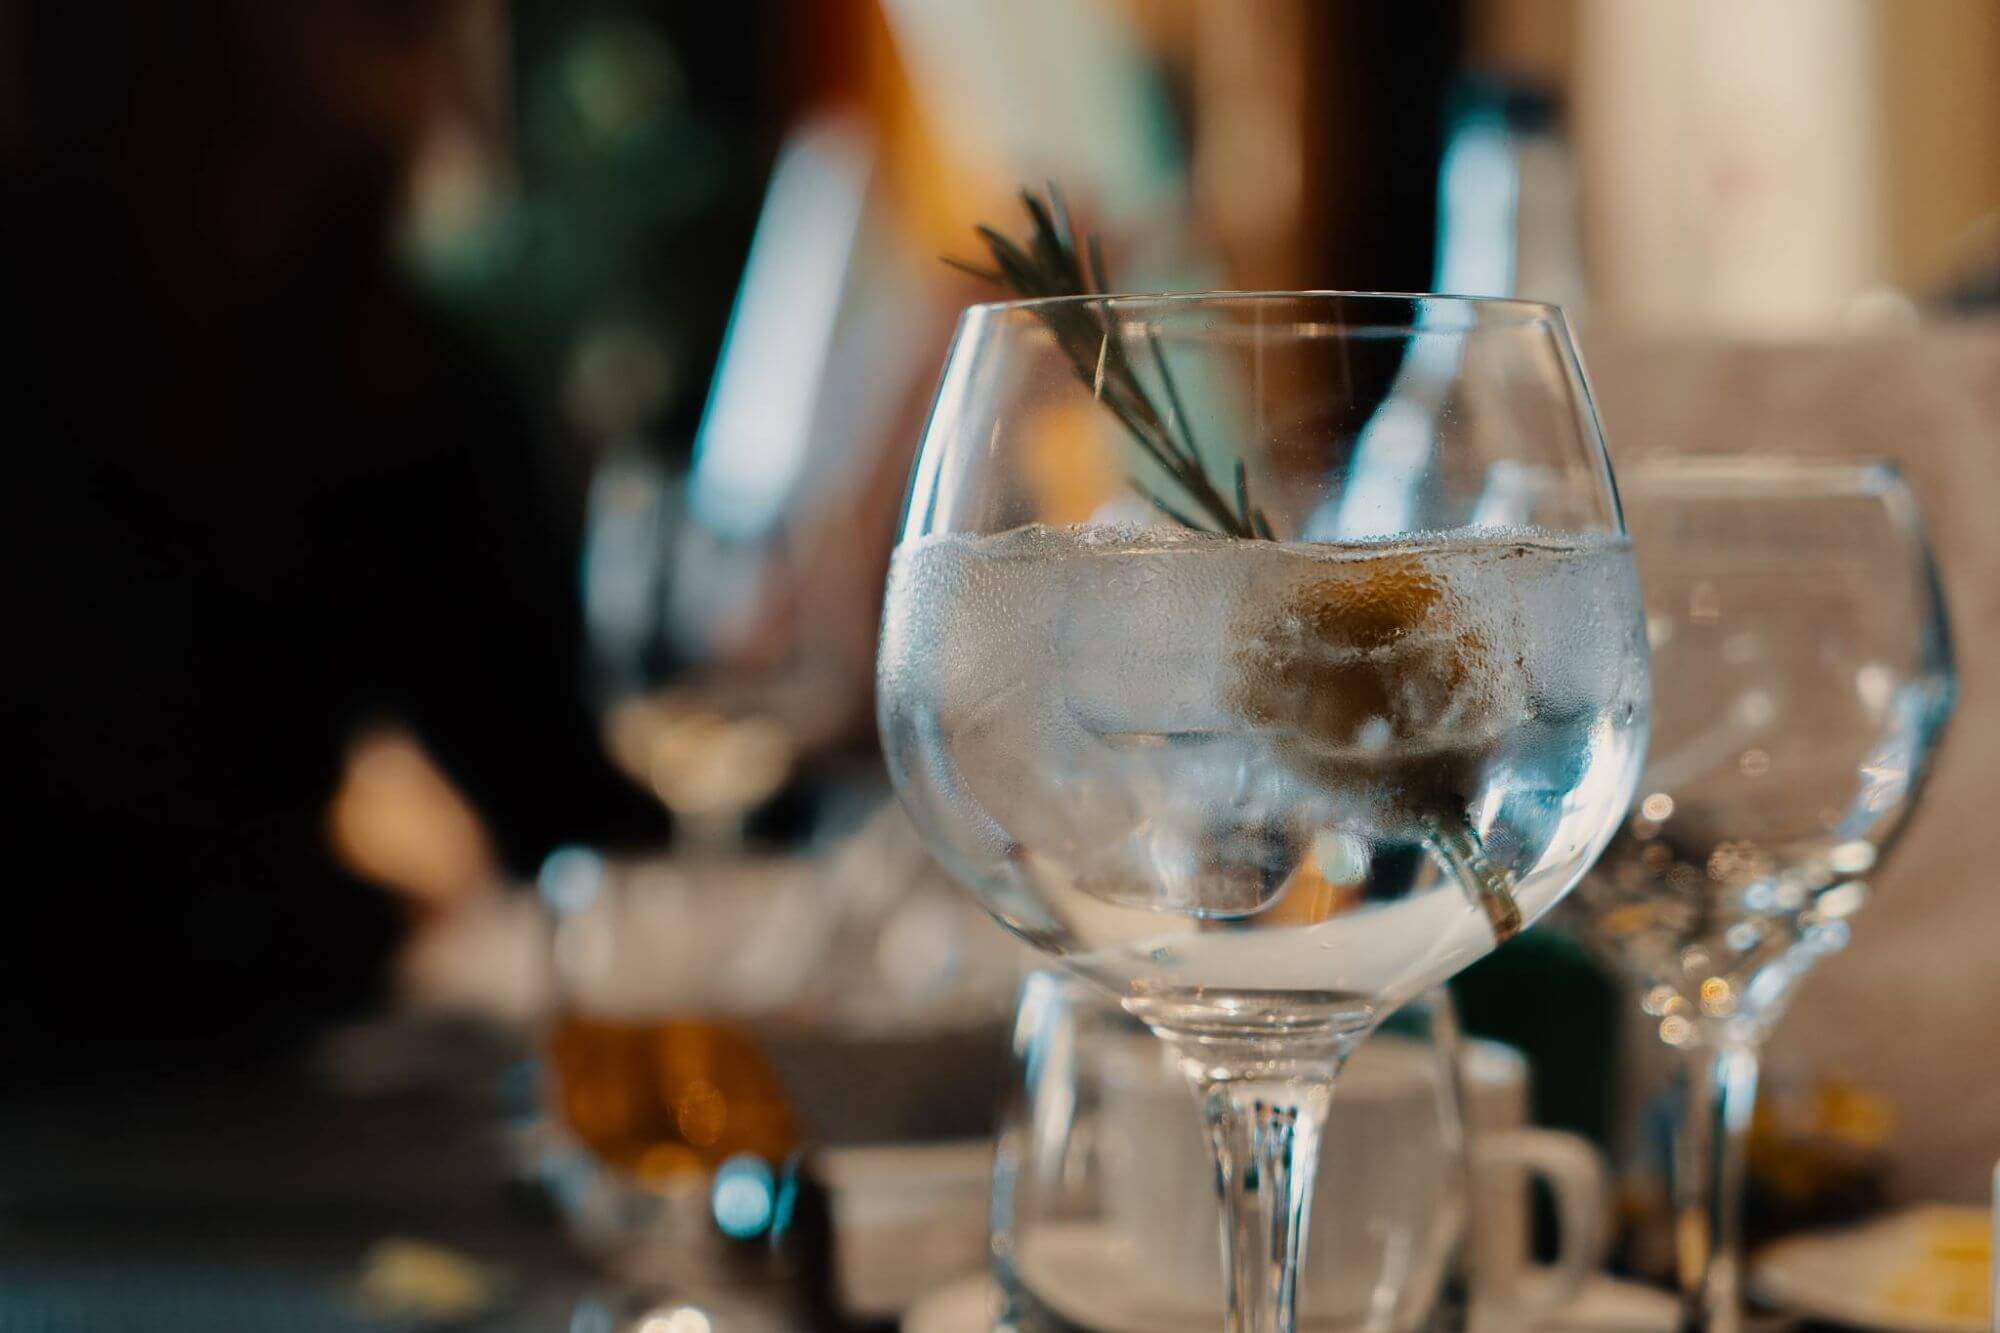 Trip Around The World in 5 cocktails--Gin and Tonic from England